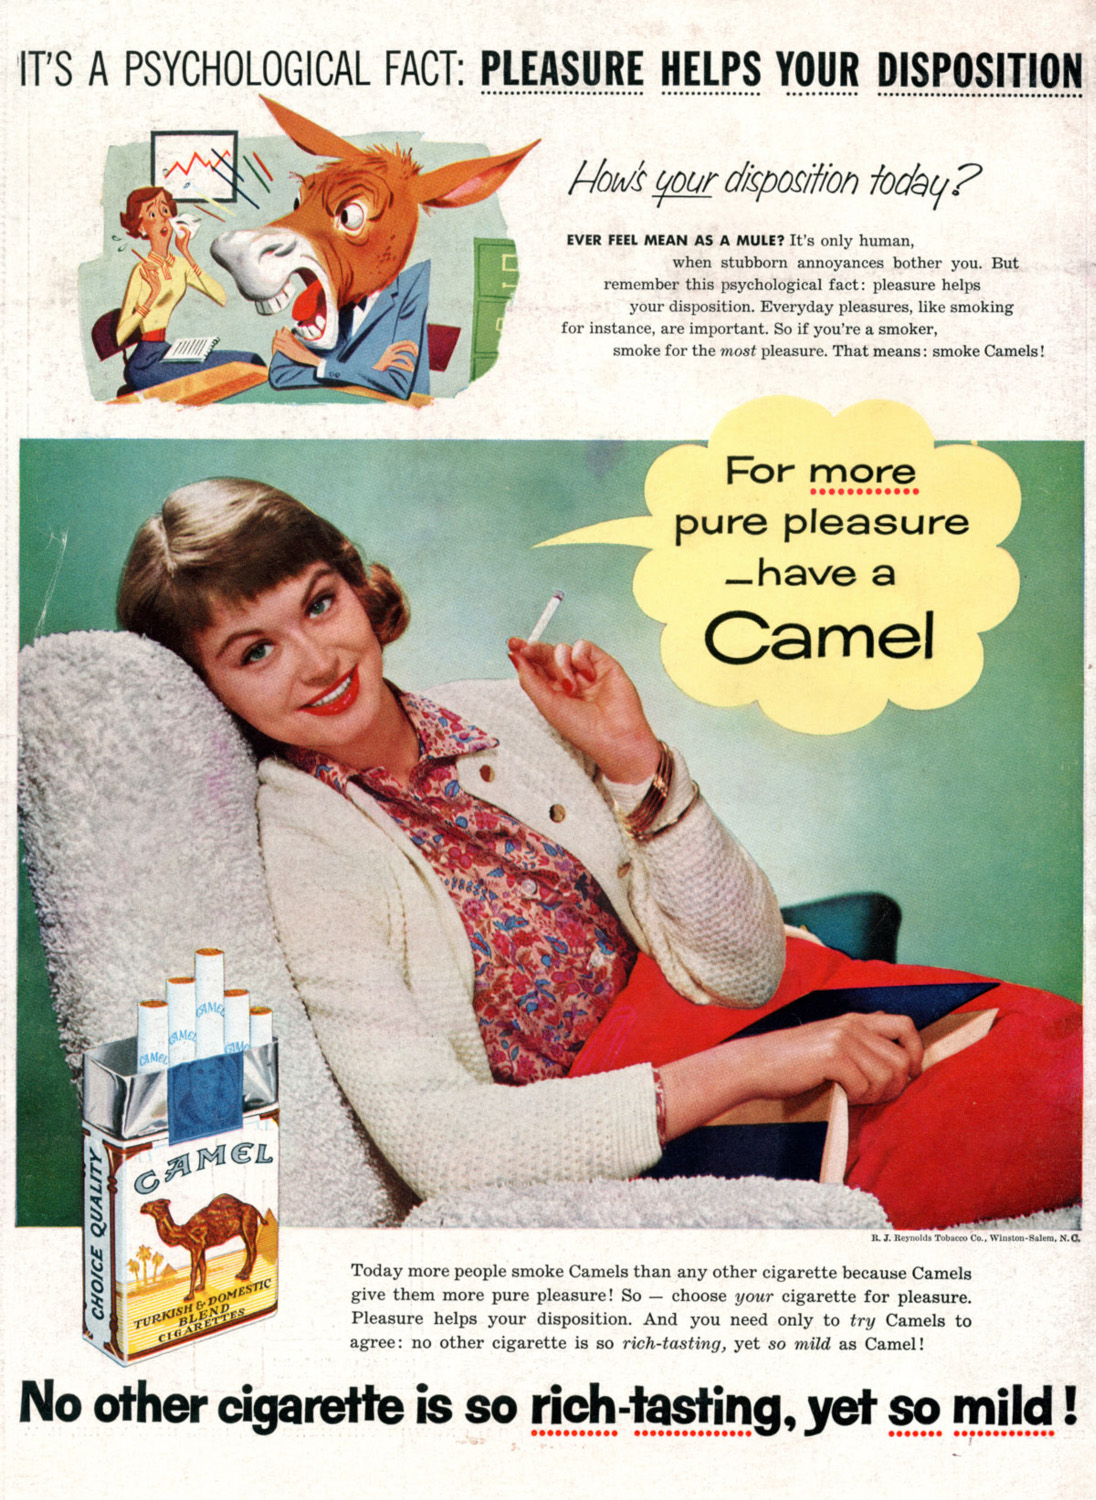 Camel pleasure helps your disposition ad